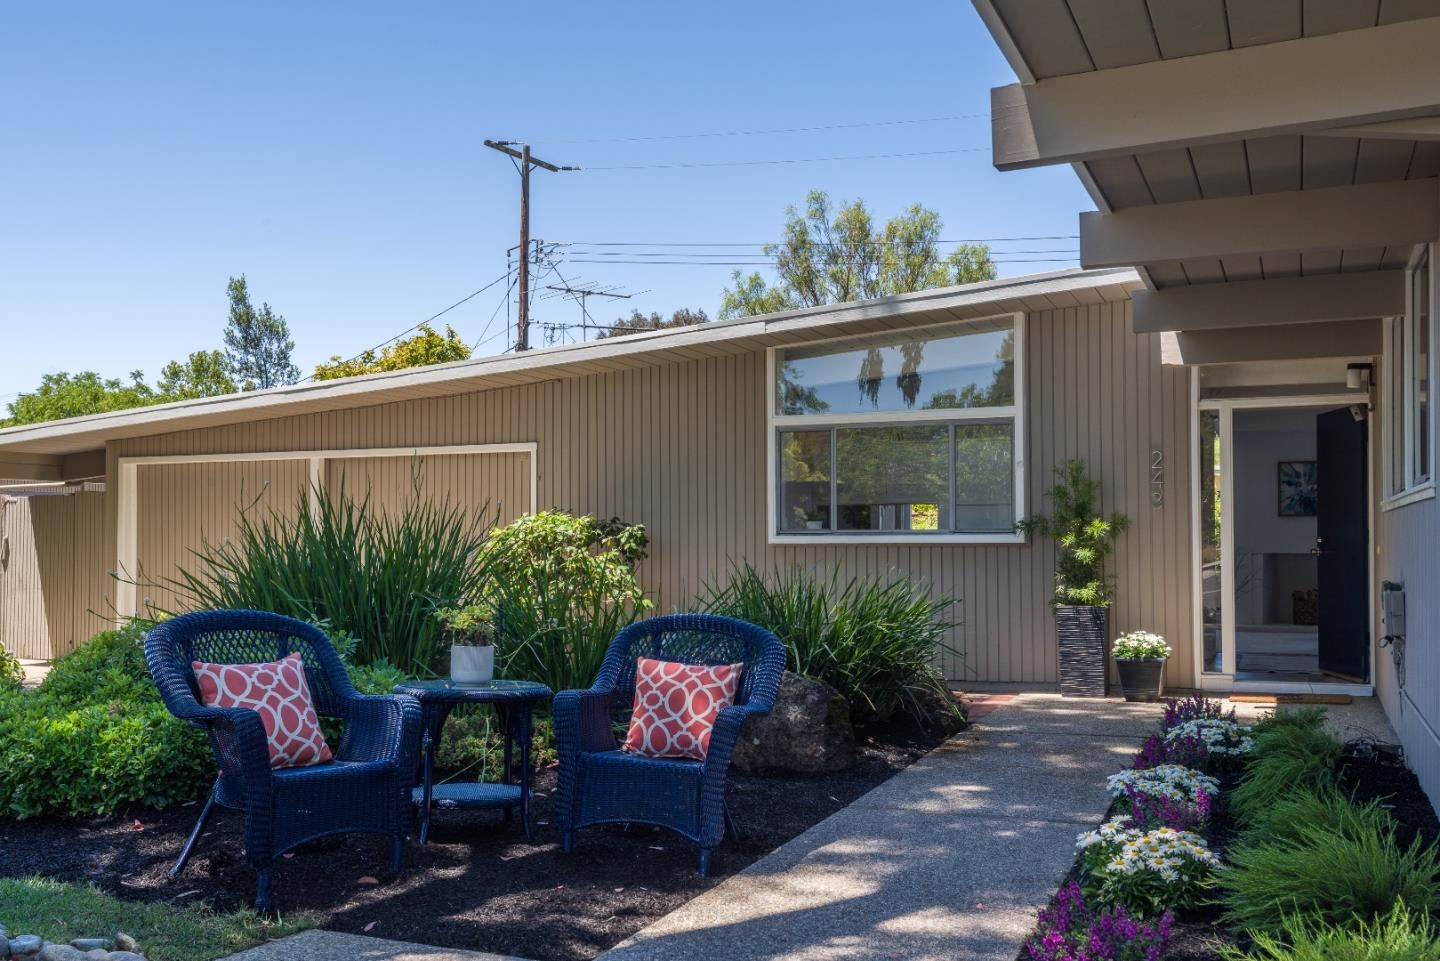 Photo for 243 Ely Place, PALO ALTO, CA 94306 (MLS # ML81853499)